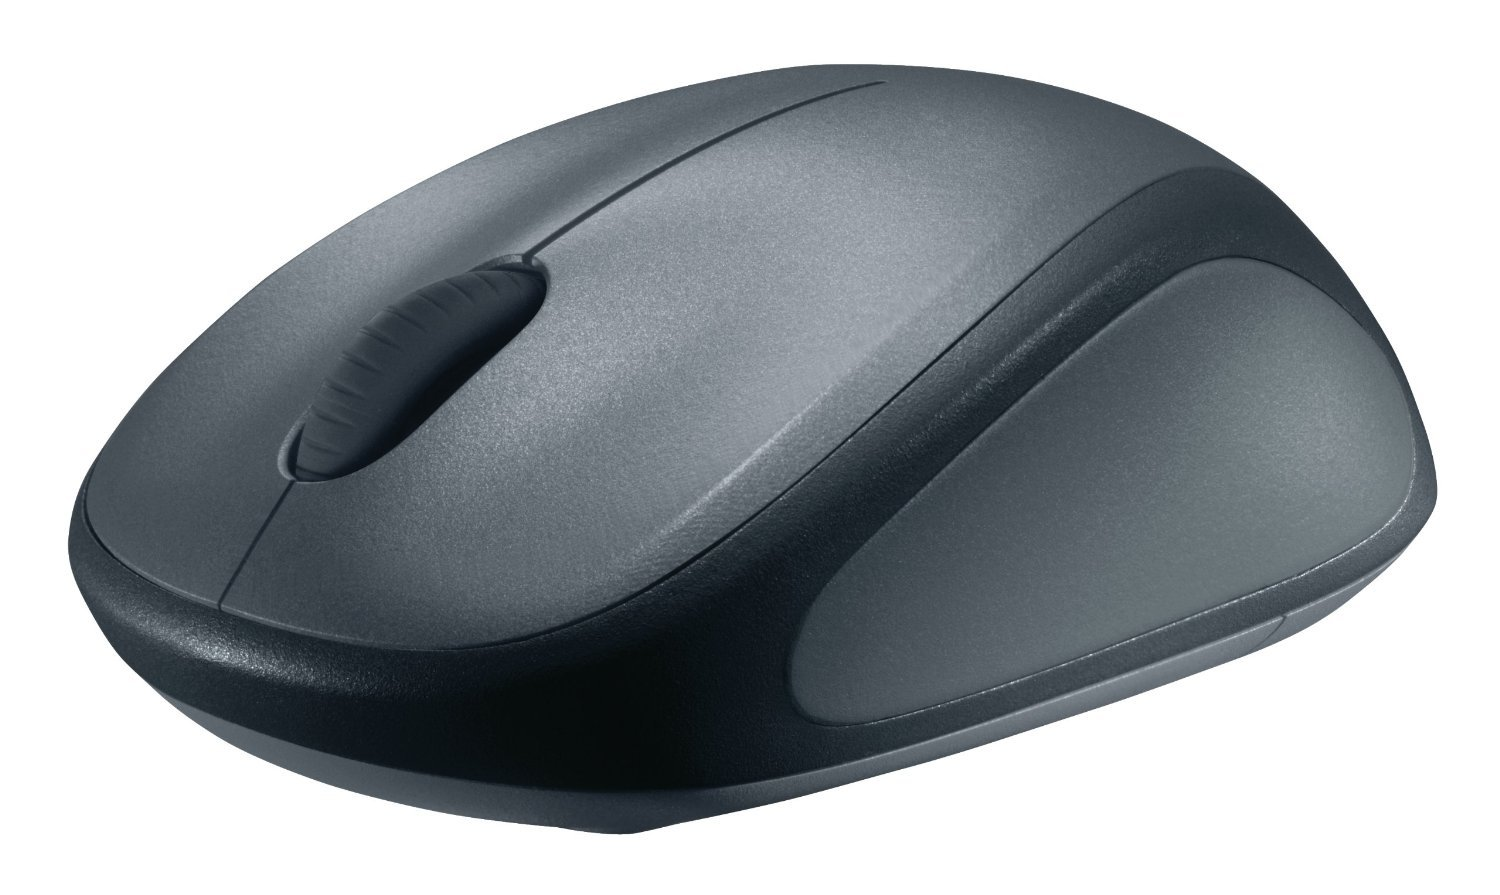 Buy Logitech M235 Wireless Mouse Colt Glossy Grey At Mighty Ape Nz Image